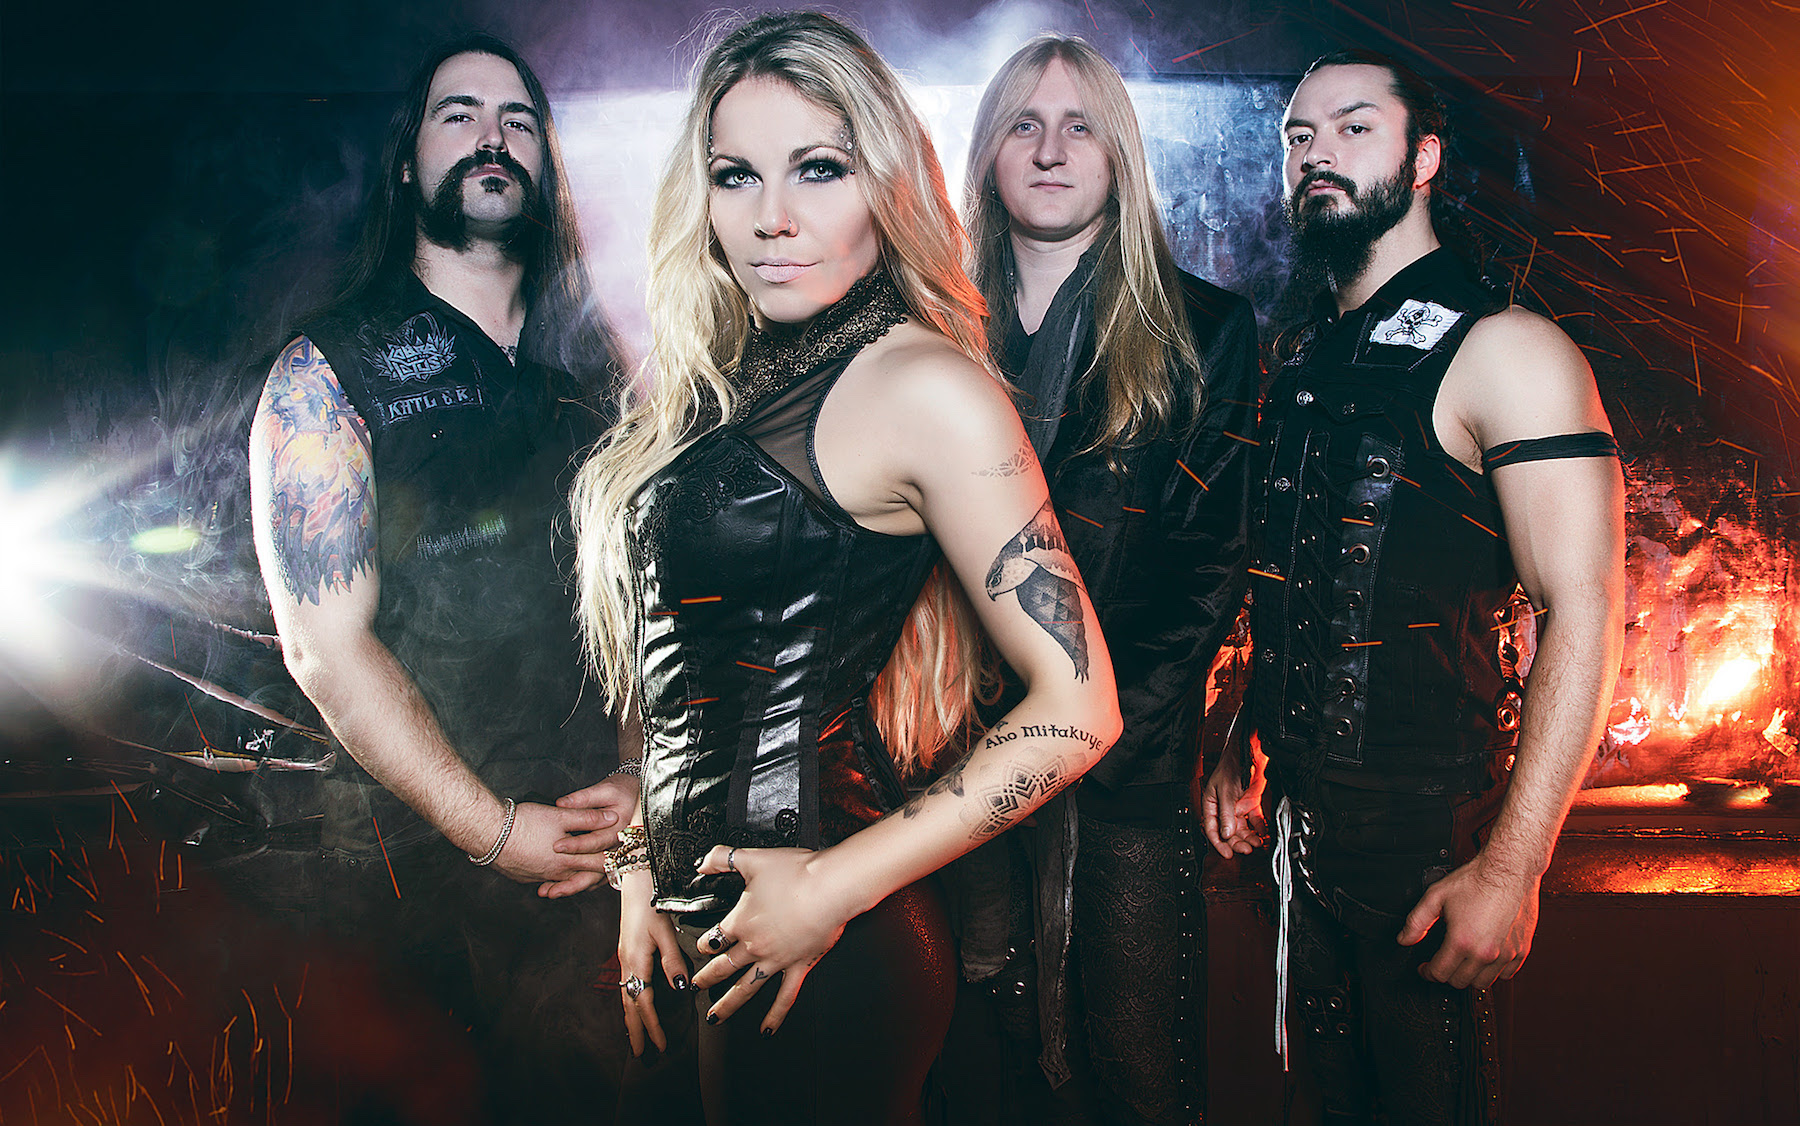 News: KOBRA AND THE LOTUS Reveal New Album Details, Stream New Song